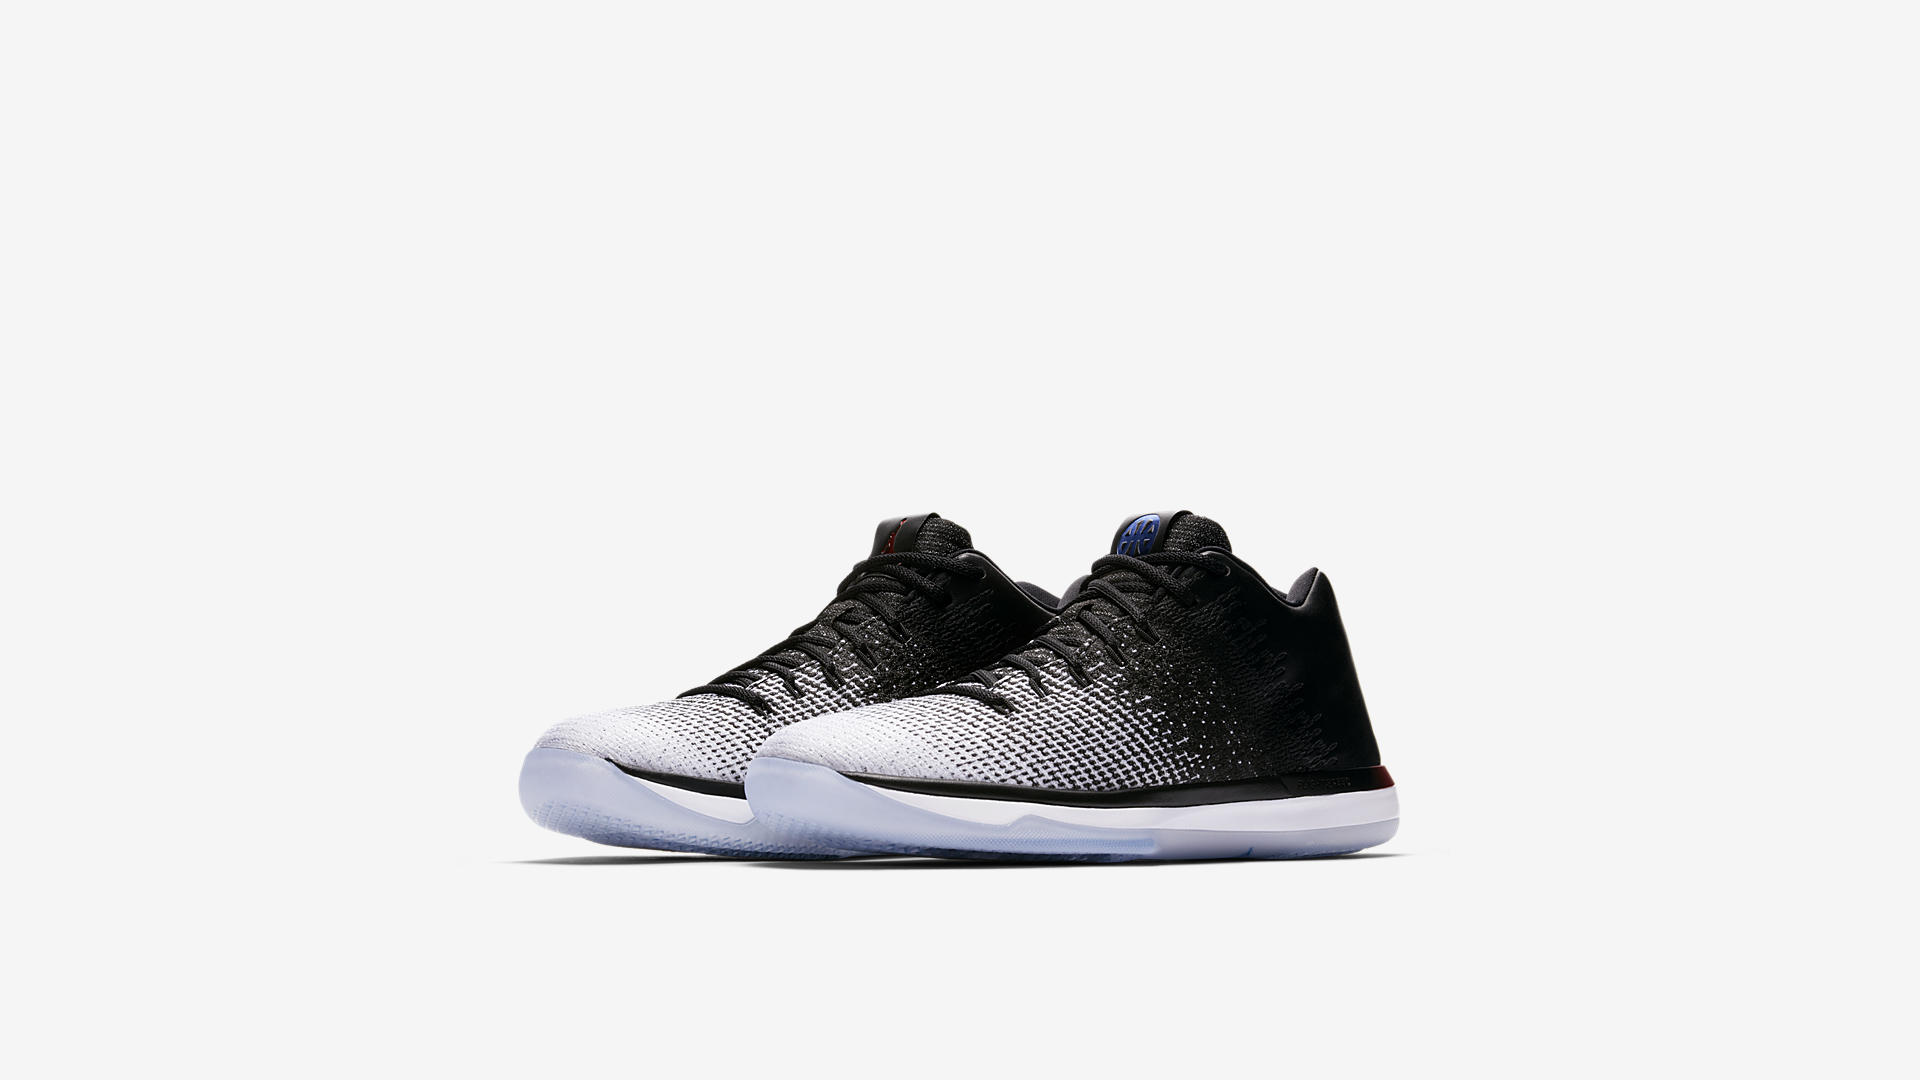 quality design a5b68 cc4e4 The Air Jordan XXXI Low 'Quai 54' Has a Stateside Release ...